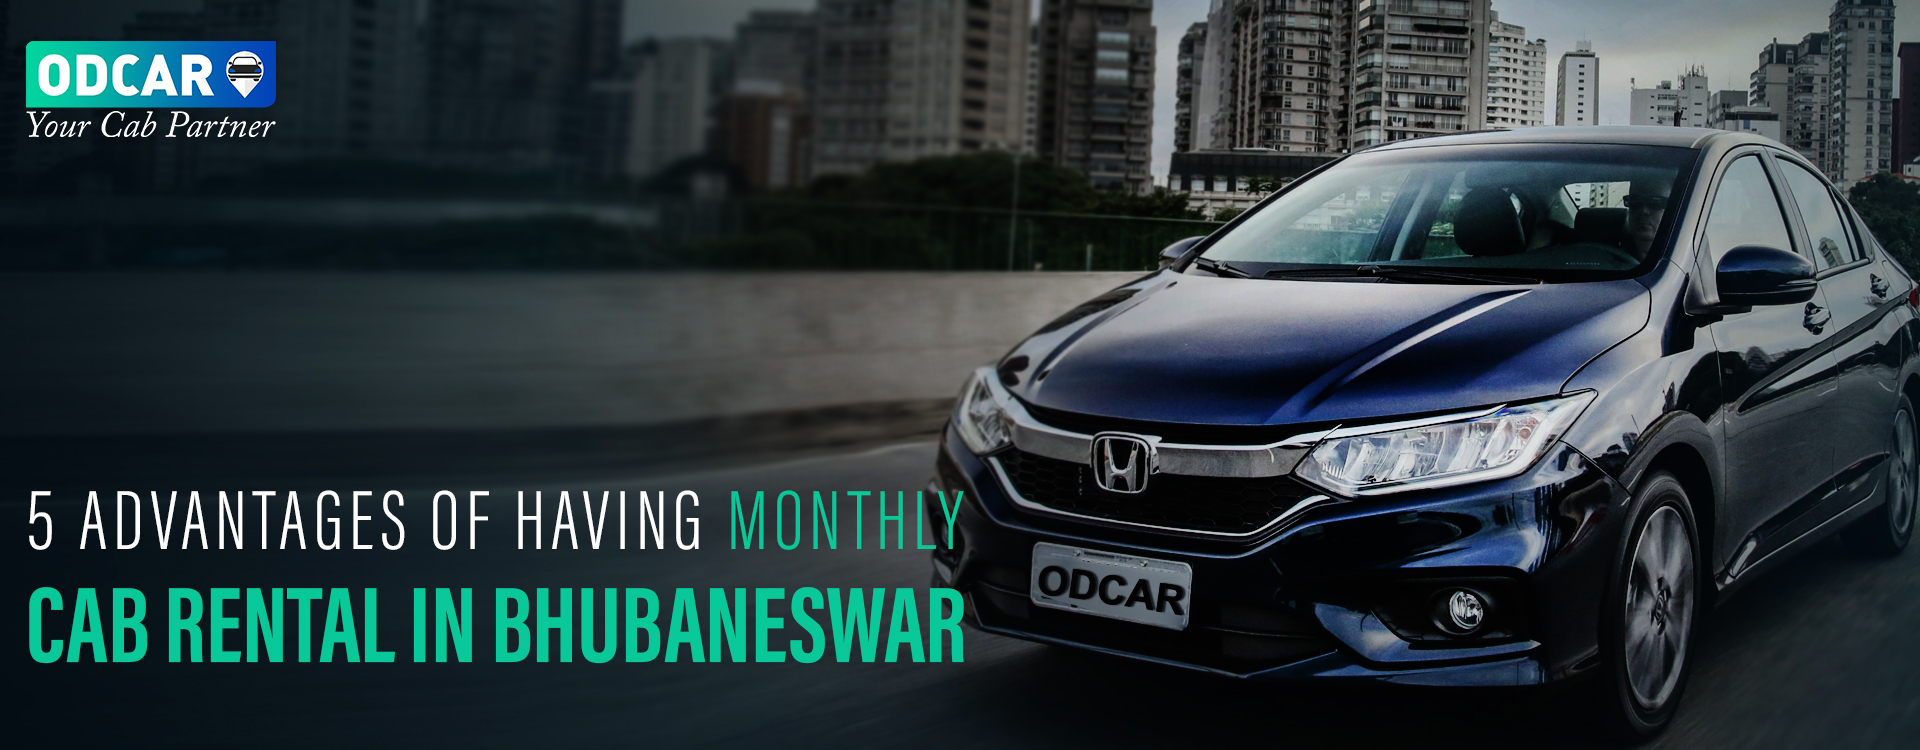 Monthly Cab Rental in Bhubaneswar